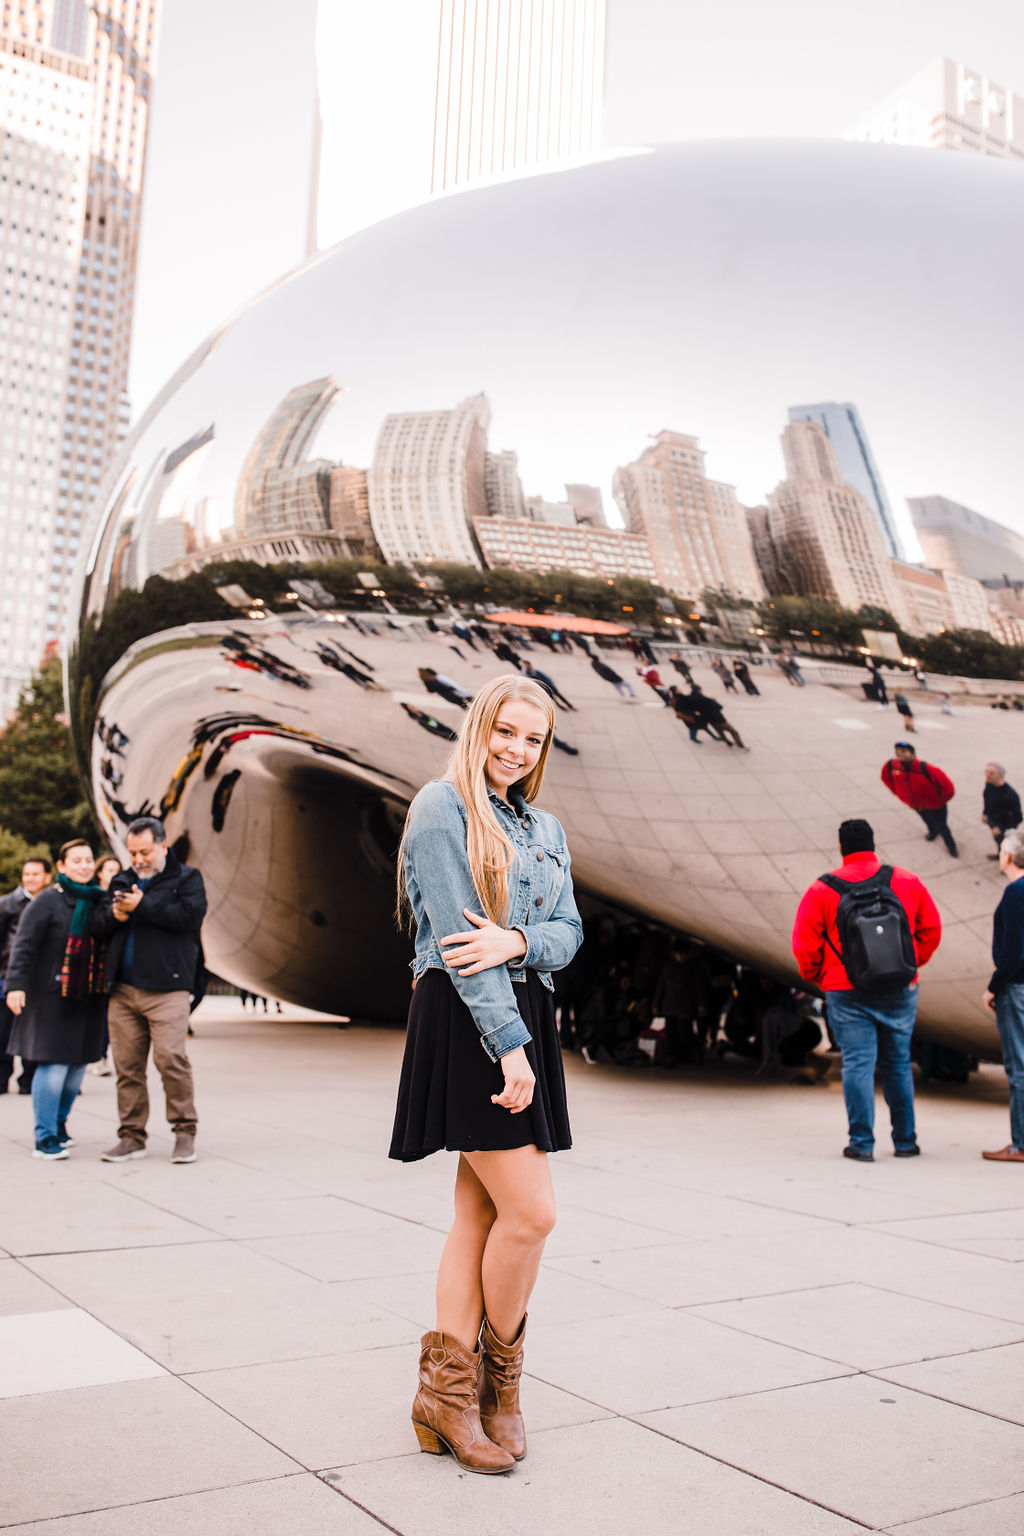 professional senior portrait photographer chicago illinois the bean smiling playful denim jacket